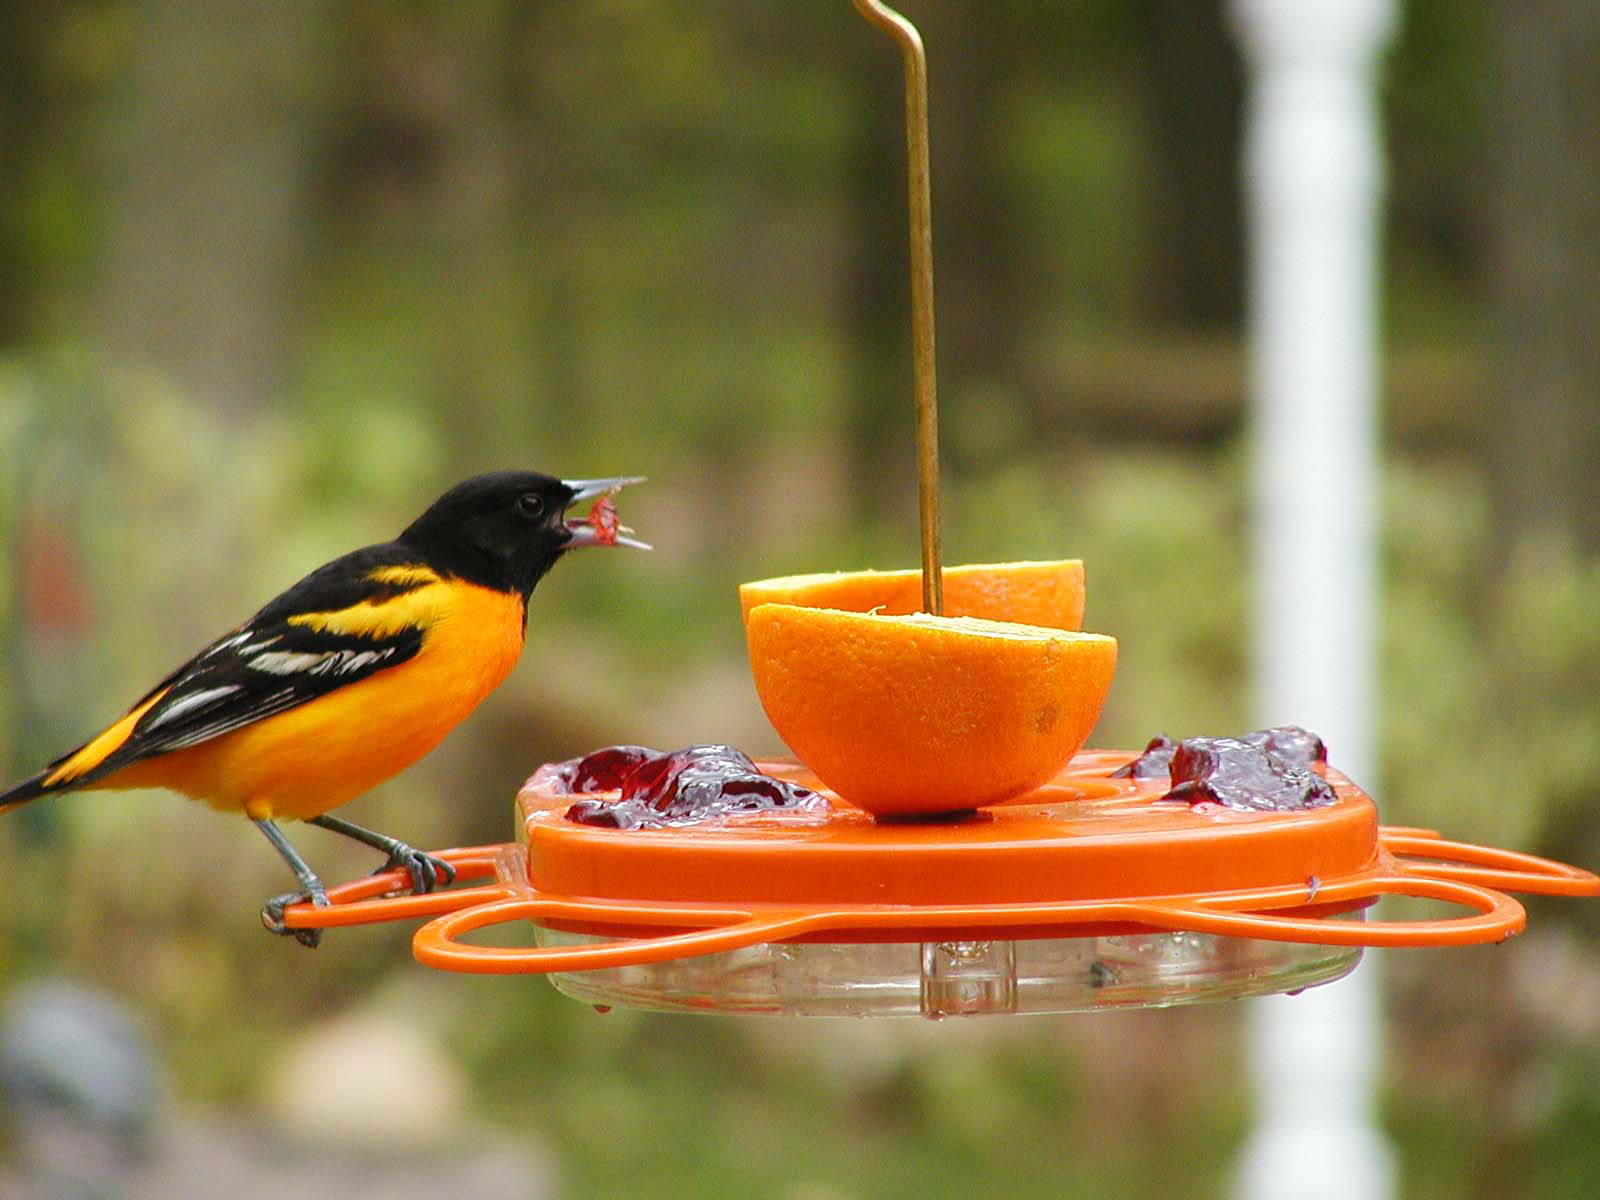 plants area sturdy pin for grape a four features sides wide open deluxe best all feeder and your jelly oriole provides perches feeding this on birds